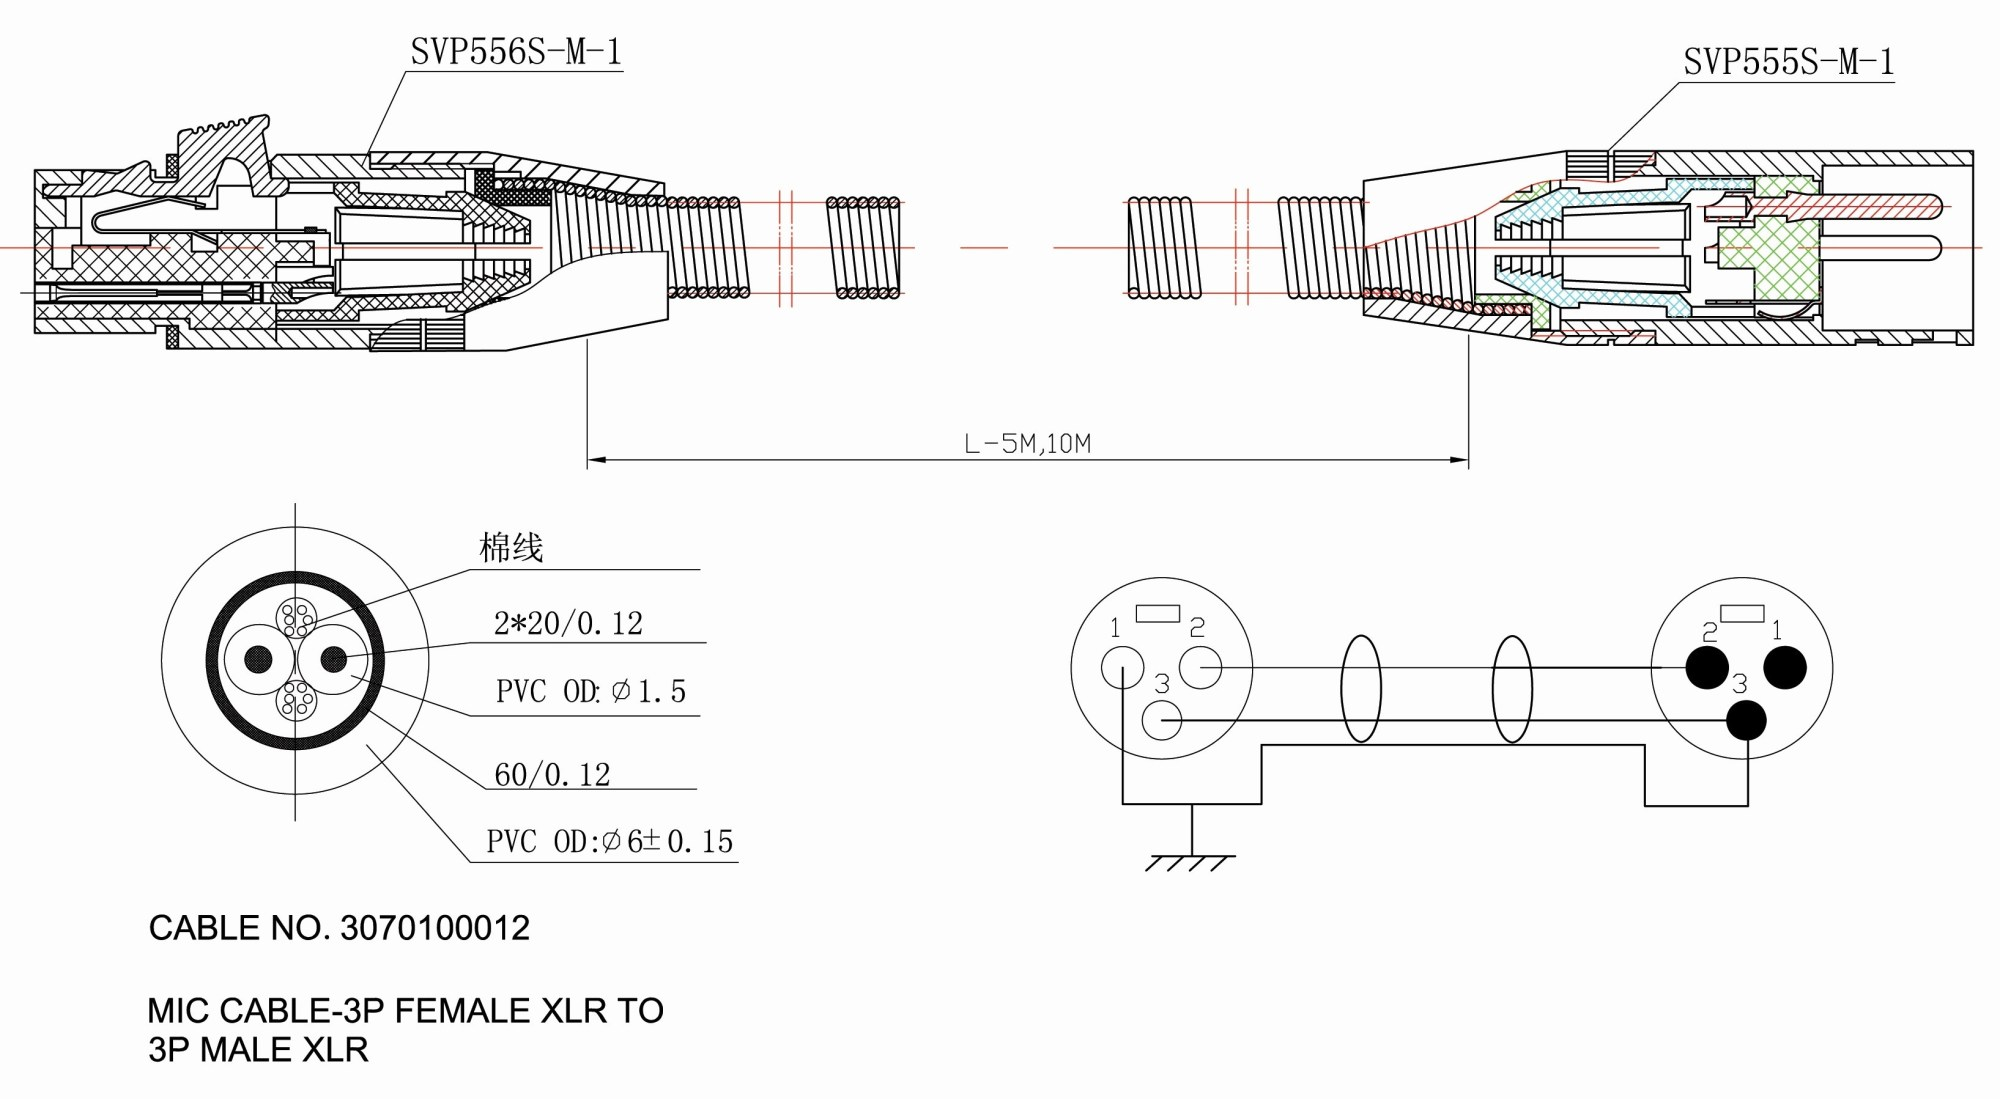 hight resolution of wiring diagram for cat5 cable wiring diagram for cat5 cable wiring diagram for cat5 ethernet